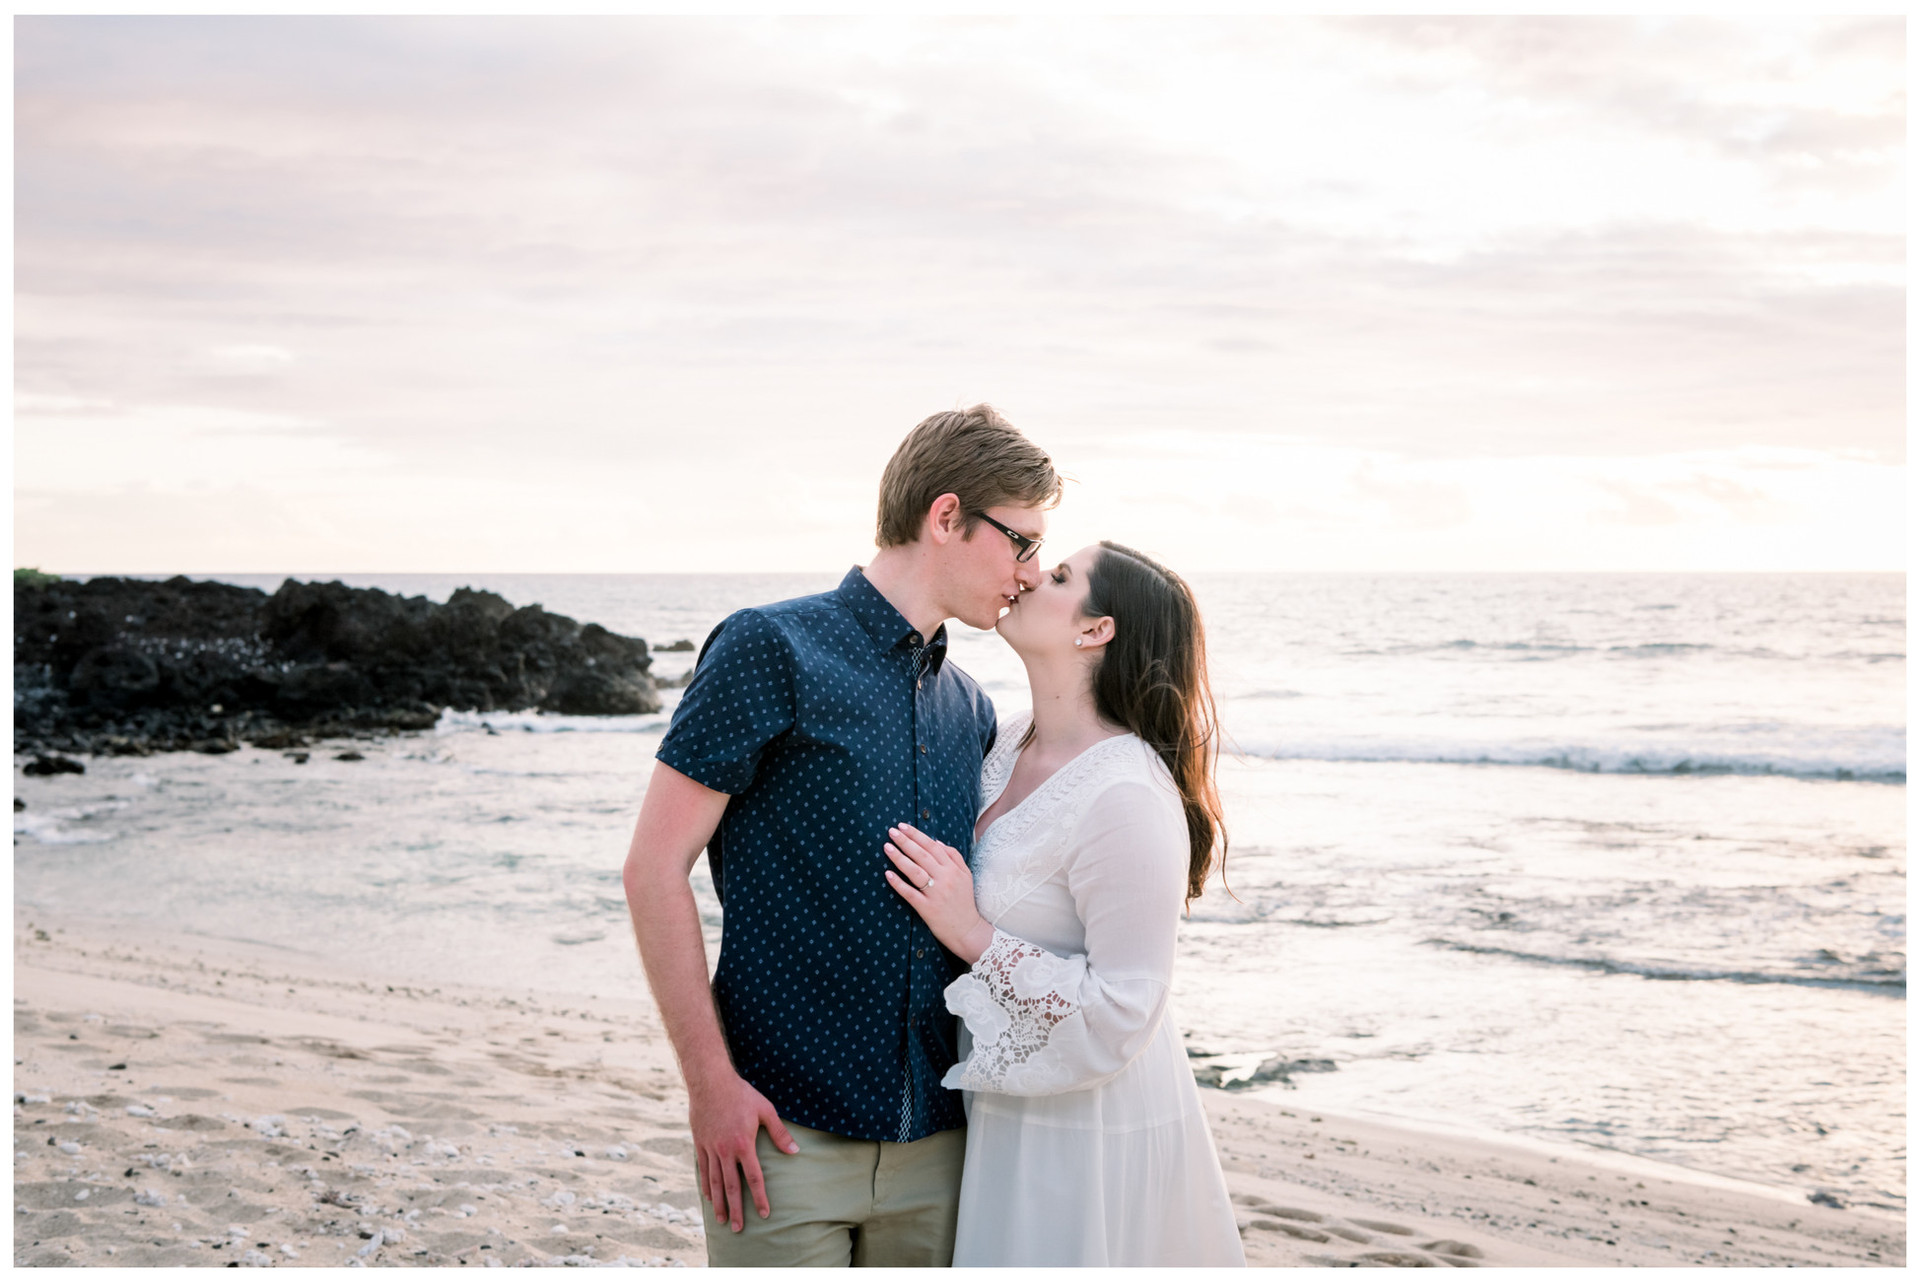 Hawaii engagement photos.jpg